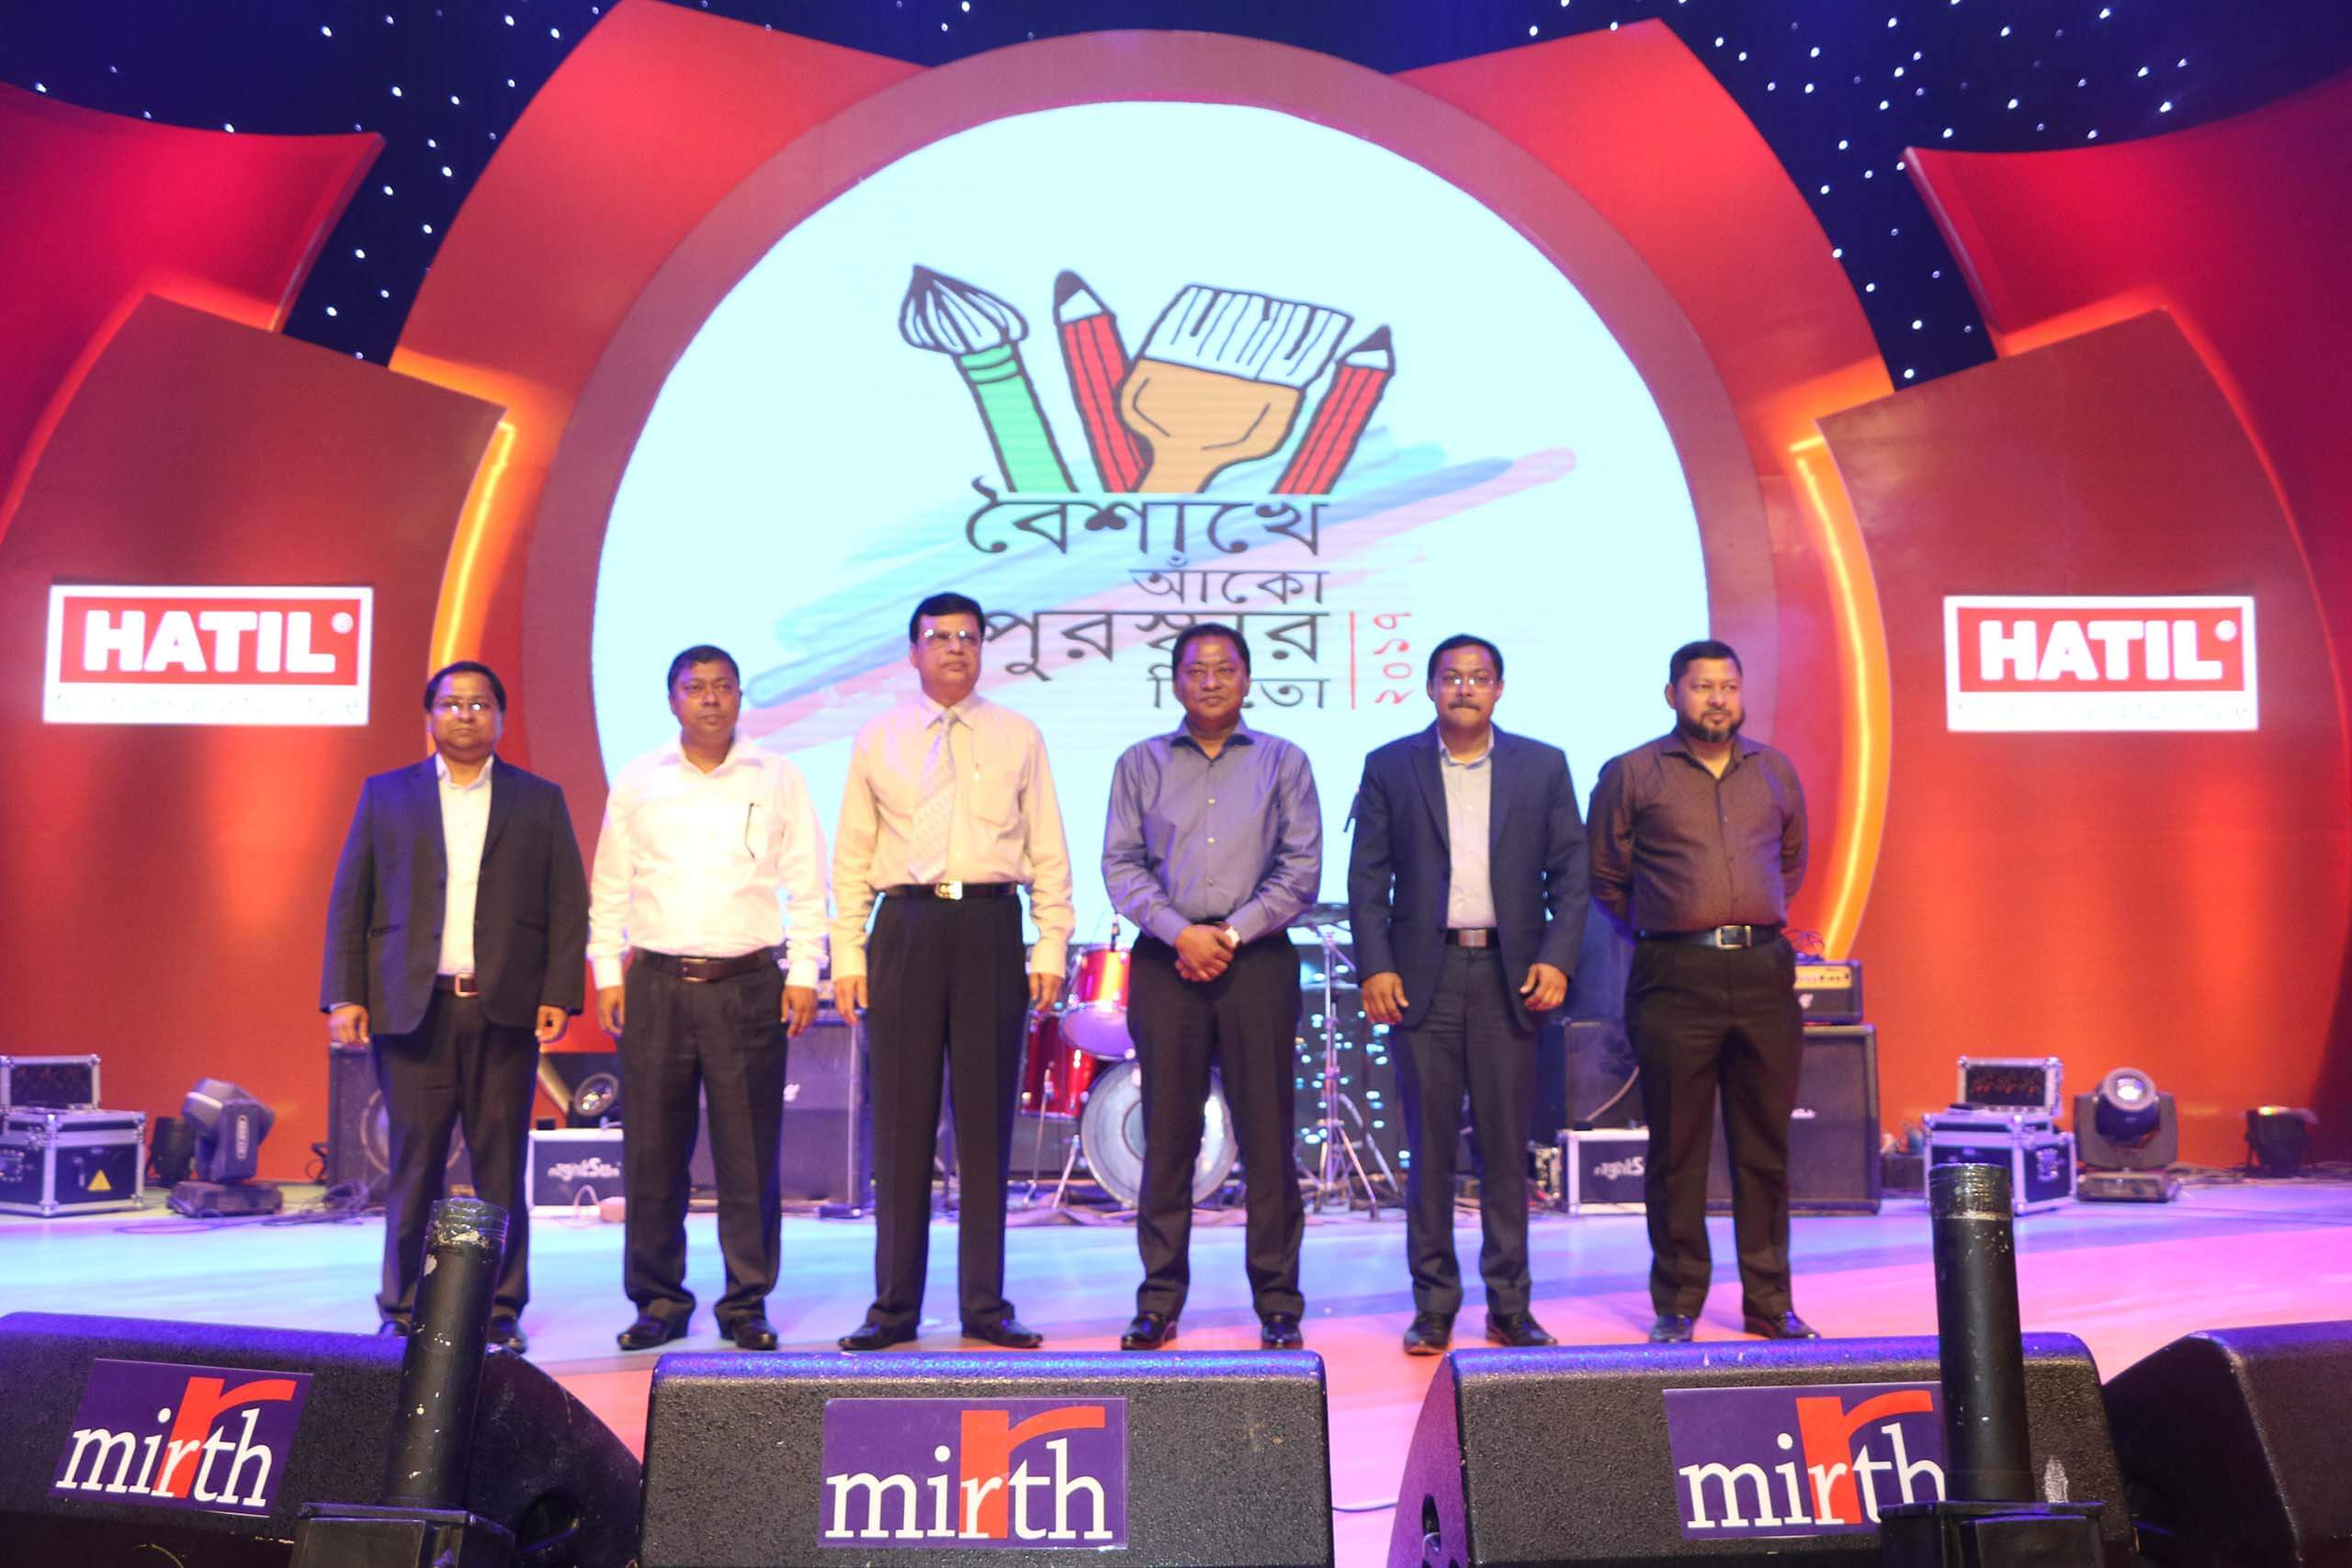 DTC-Event-Activation-Bangla-New-Year-Contest-Image-13